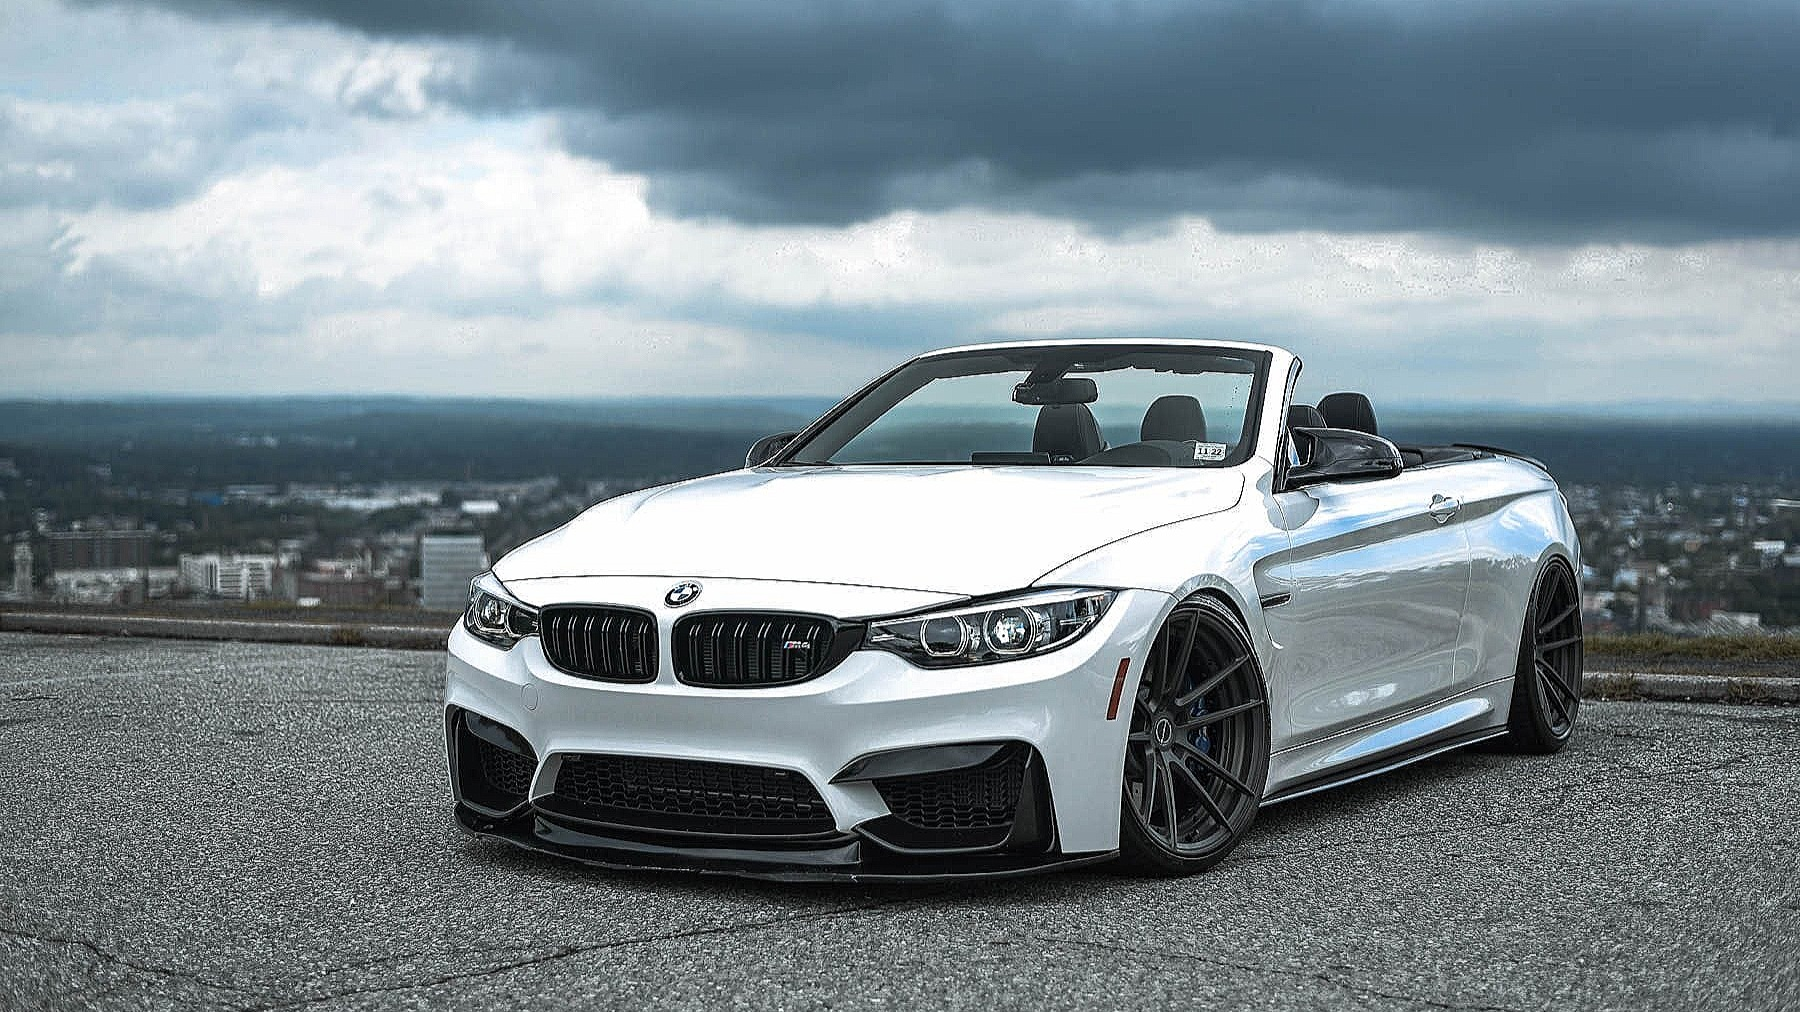 white-bmw-m4-f82-cabriolet-convertible-brixton-forged-m51-duo-series-brushed-smoke-black-concave-wheels-5-1-1800x1202.jpg